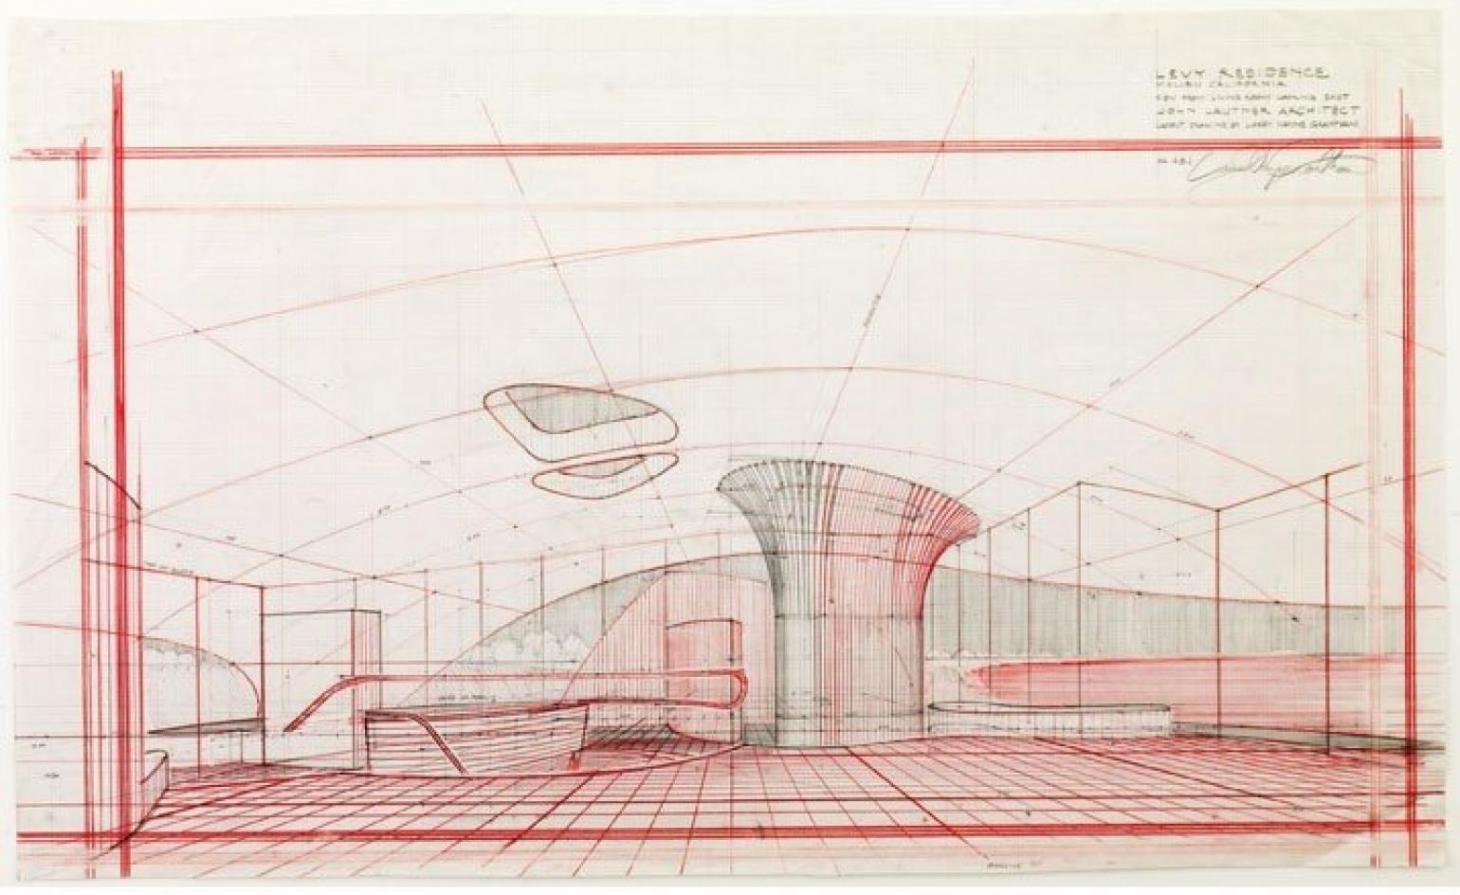 John Lautner drawing